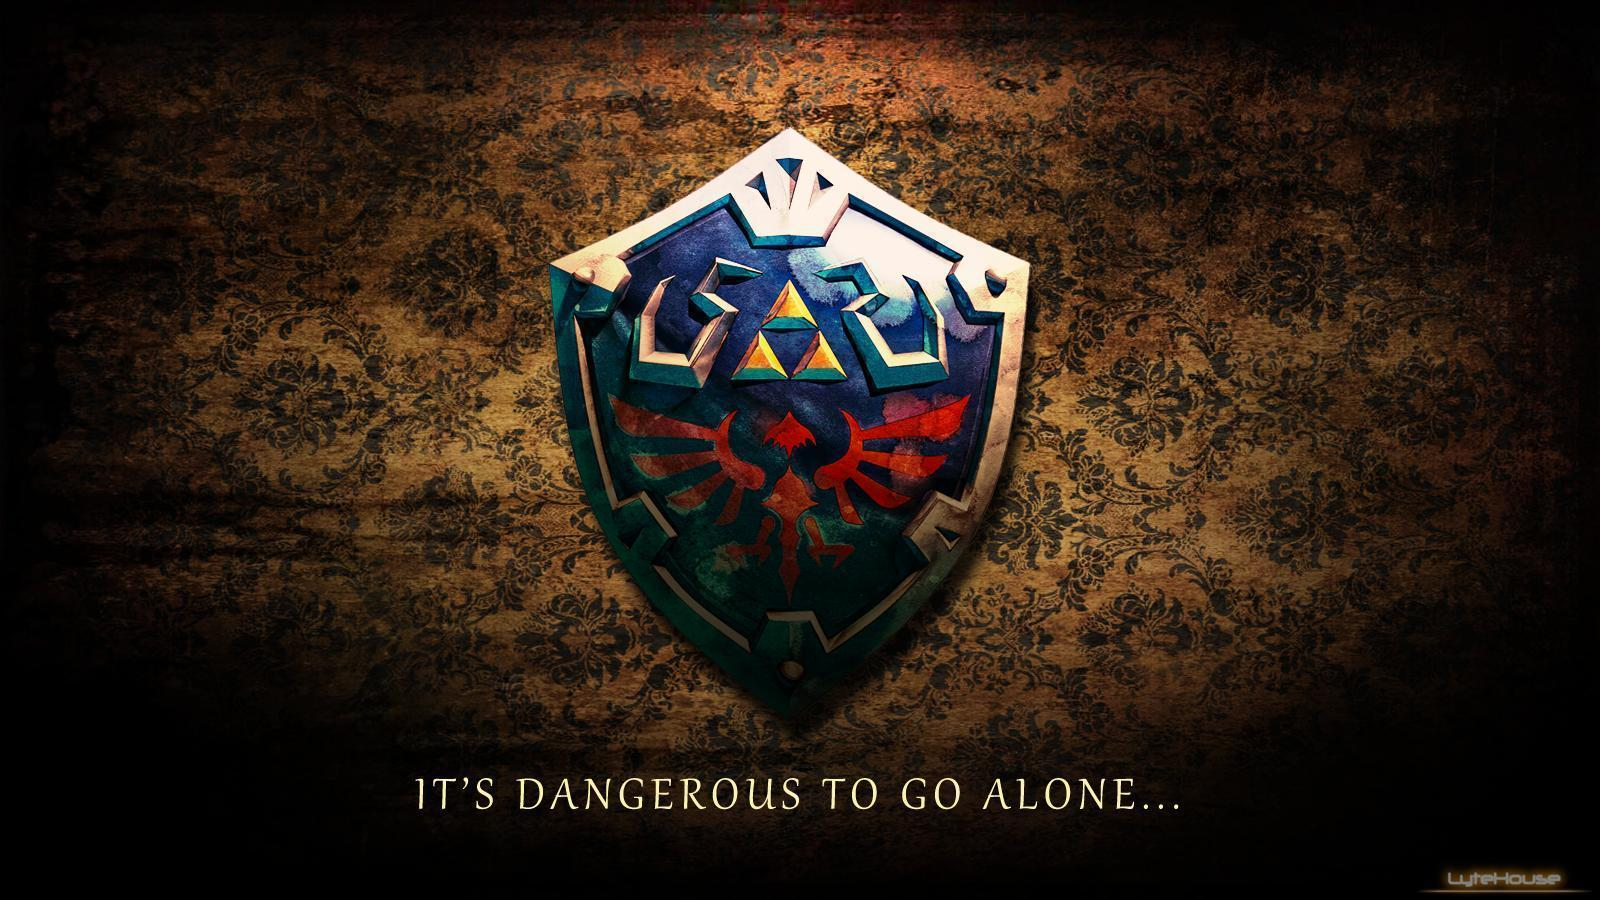 The Legend Of Zelda Computer Wallpapers, Desktop Backgrounds